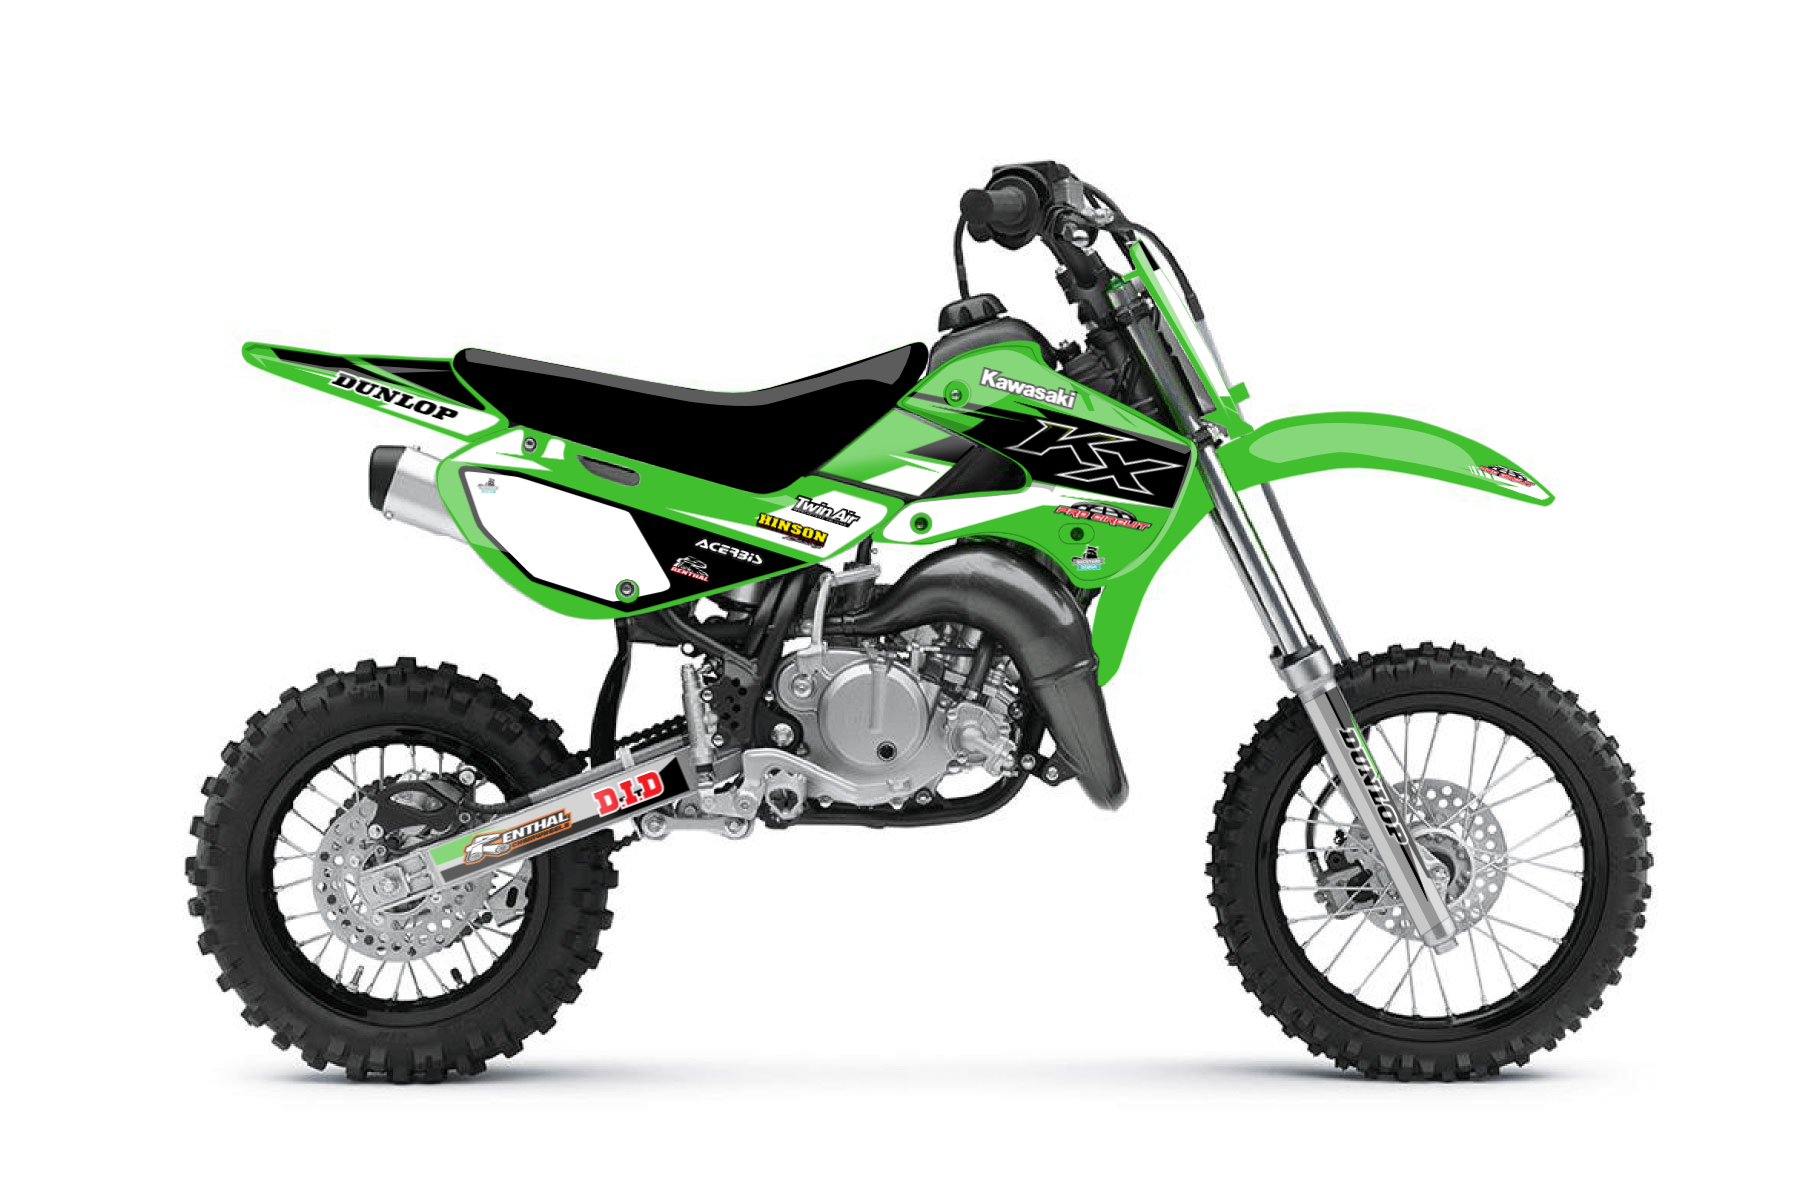 Kawasaki KX65 MX Graphic Kits  This is your first bike to get some experience on the off road tracks. Good handling and a sturdy framework will provide you a good basis to become better and practise as much as possible.